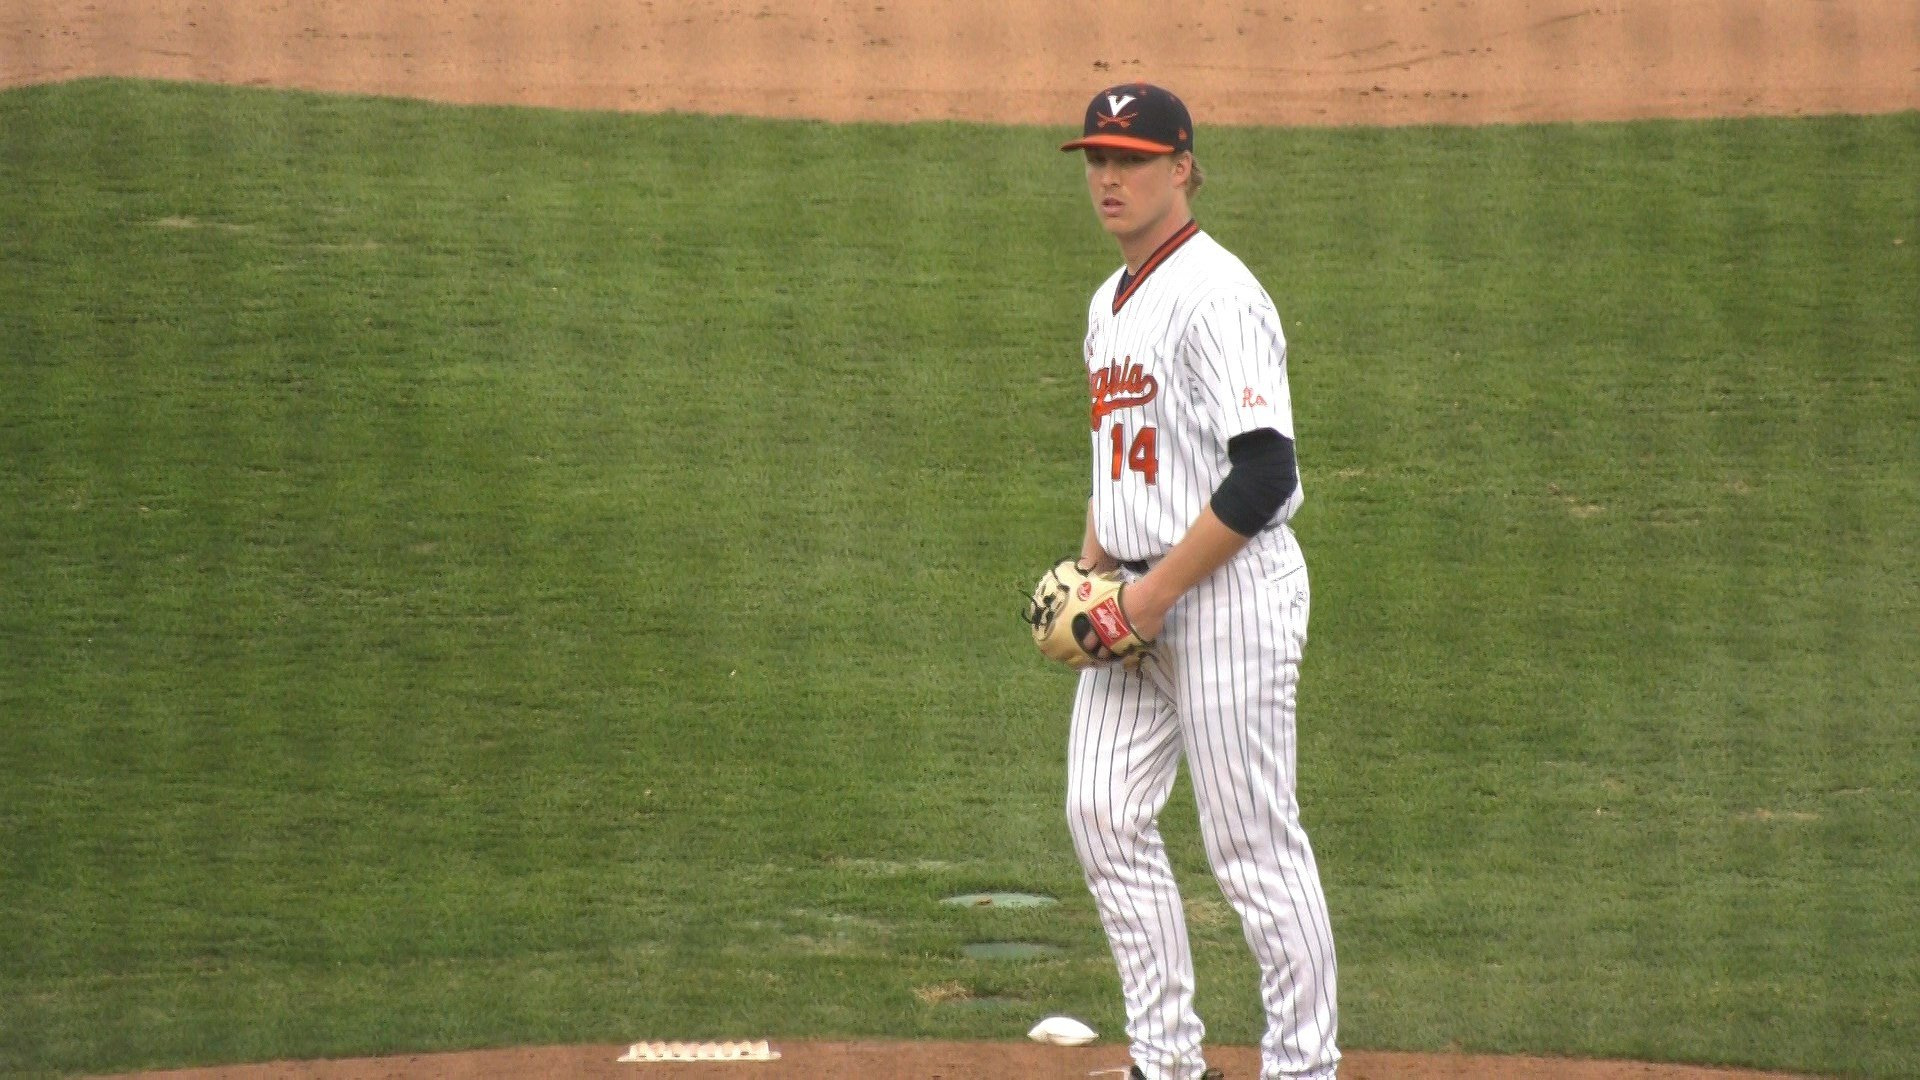 Derek Casey had 7 strike outs in the 9-0 win over Virginia Tech on Friday